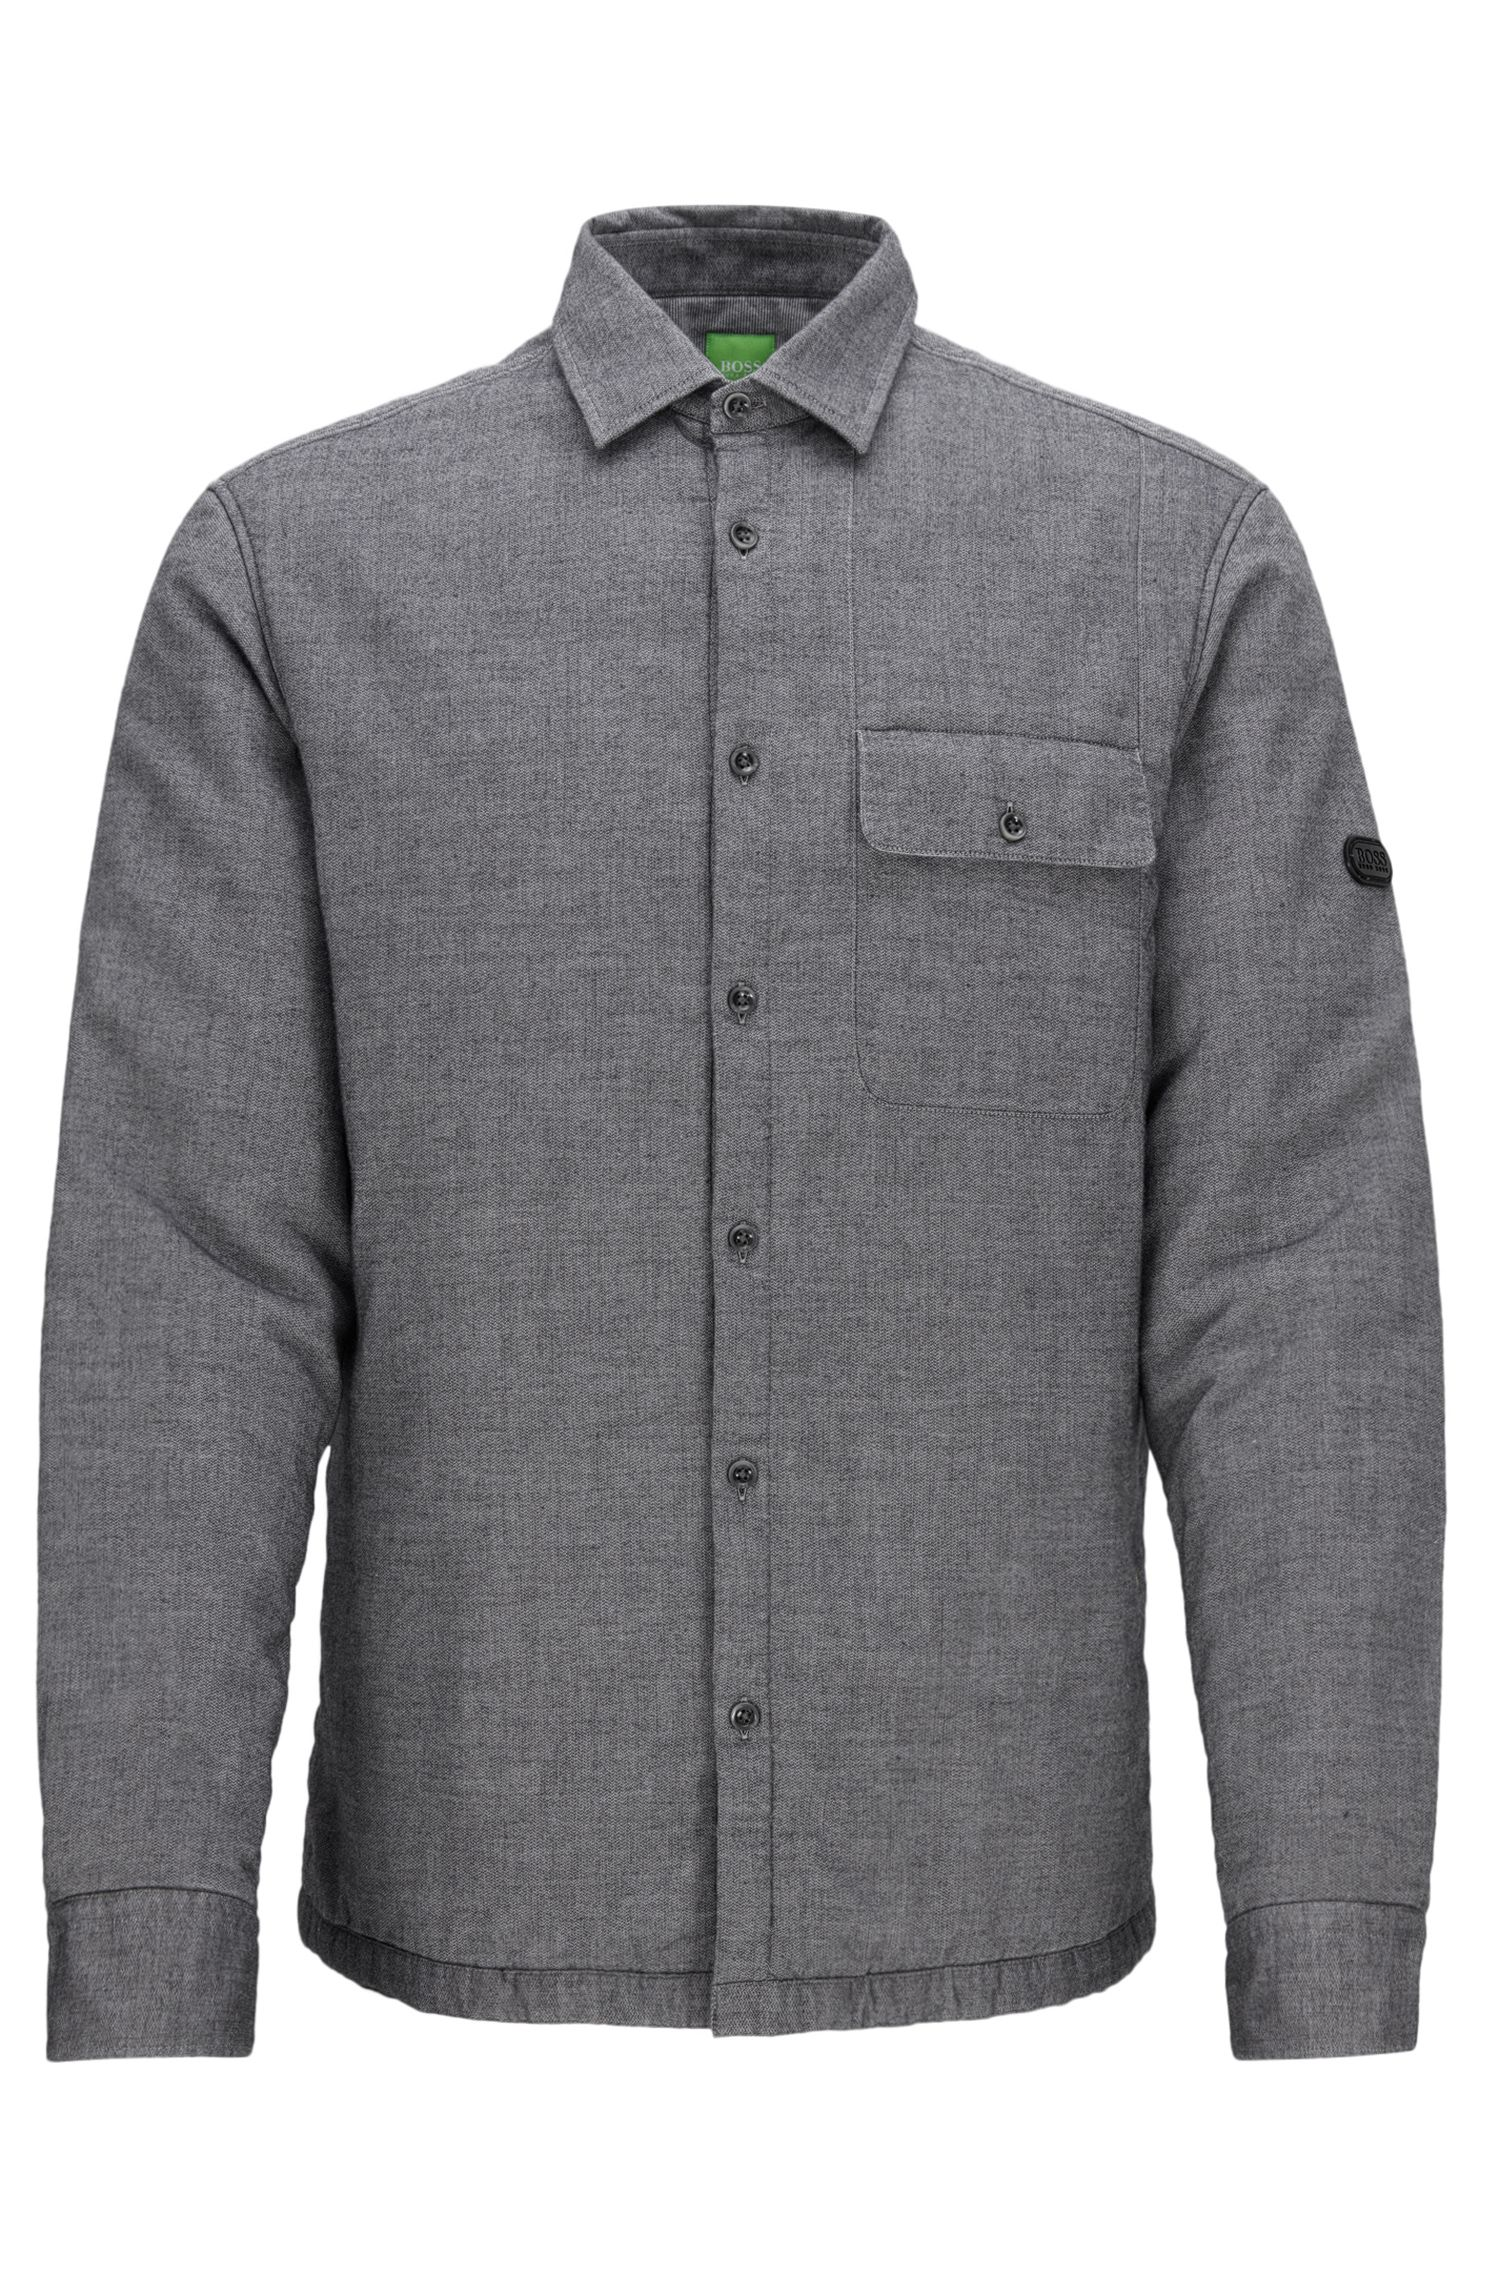 'Baisy' | Relaxed Fit, Garment-Washed Cotton Button Down Shirt